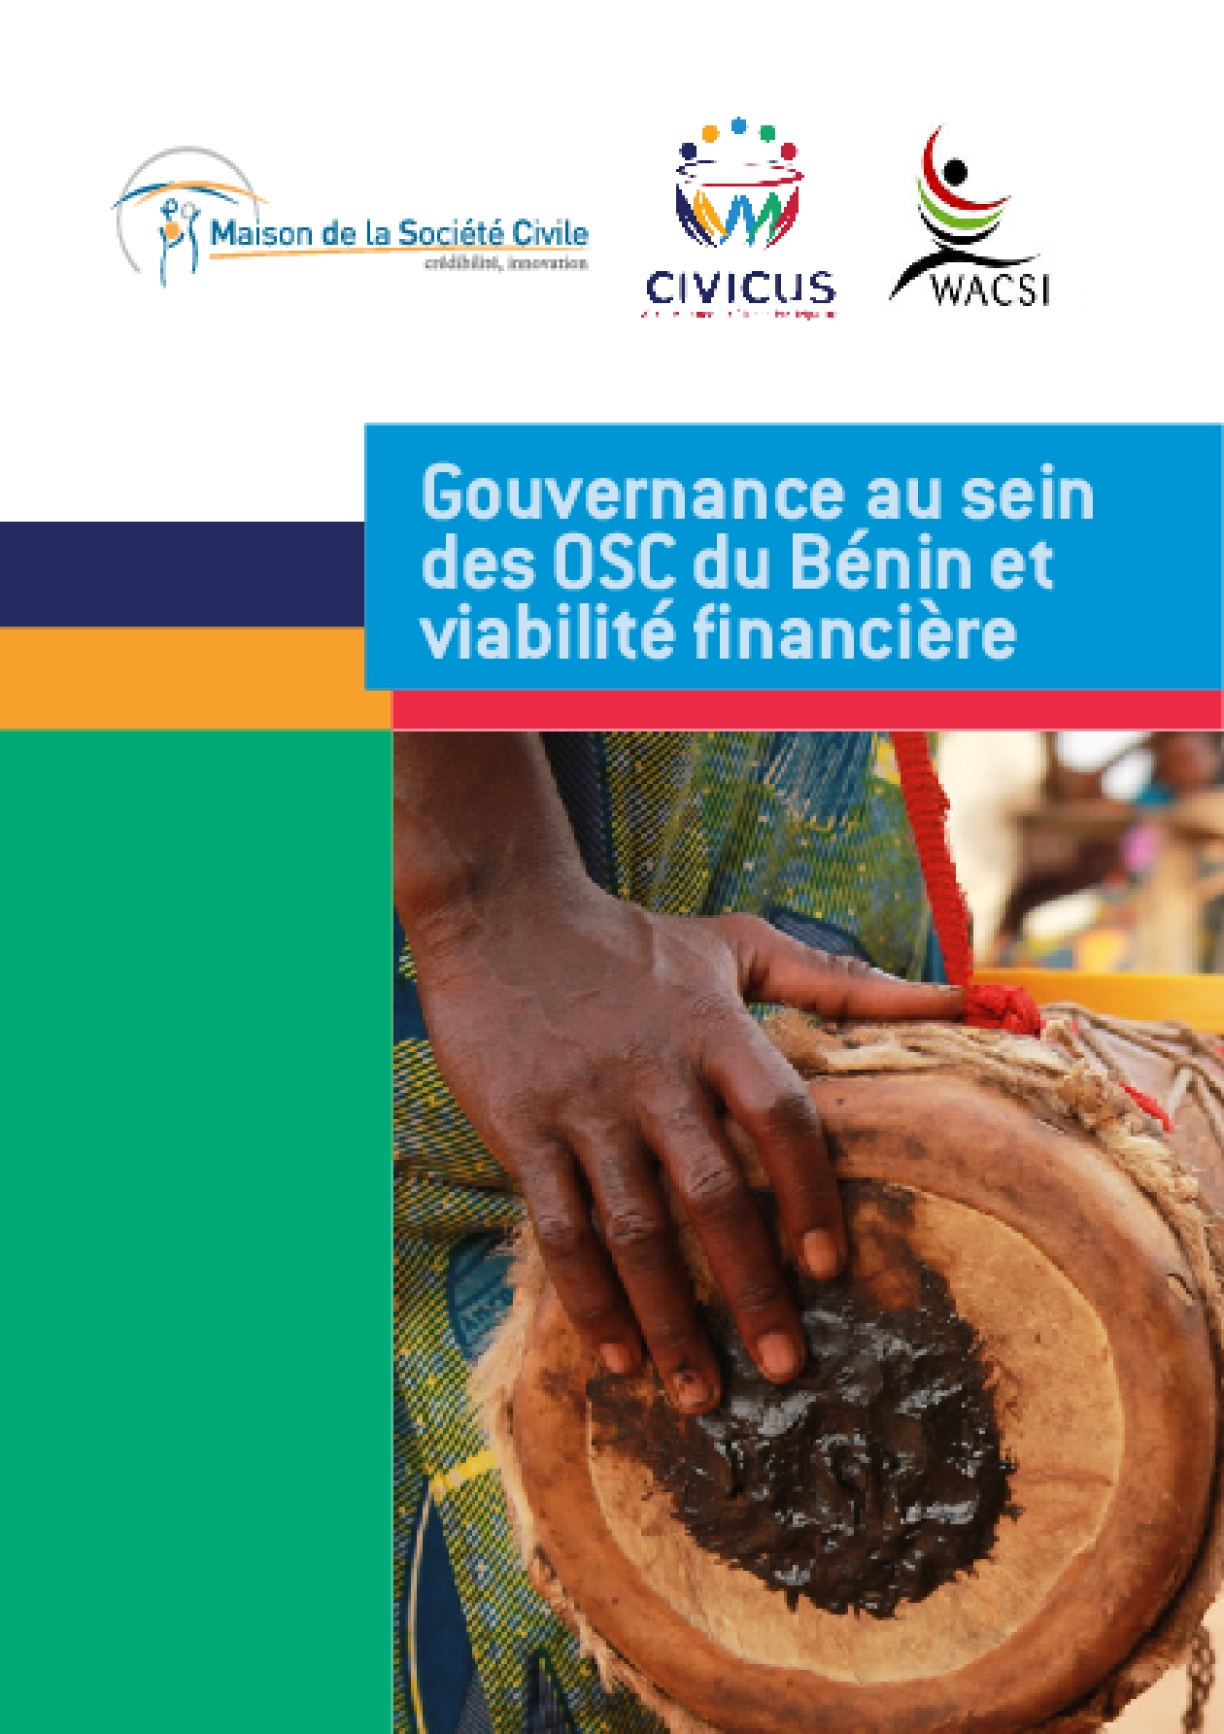 Benin: CSO Governance and Financial Sustainability